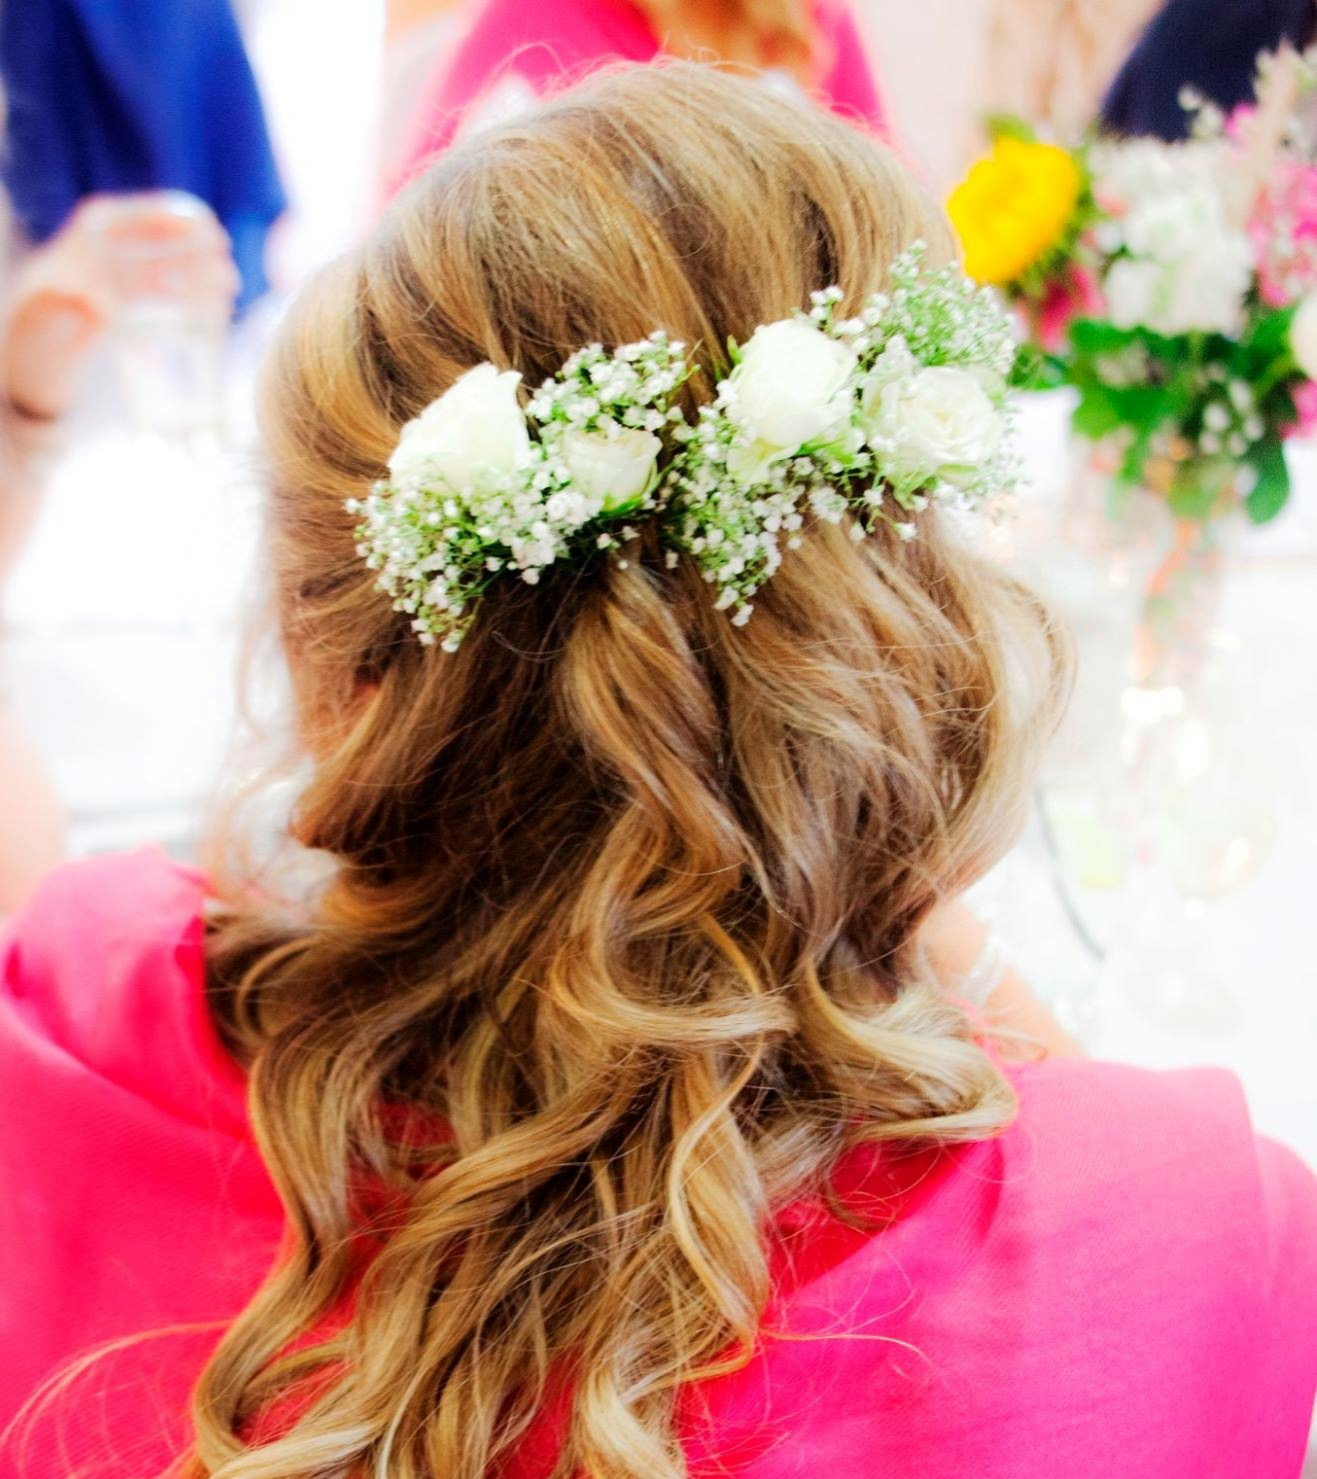 loose curly bridal hair with floral headwear adding detail and natural look